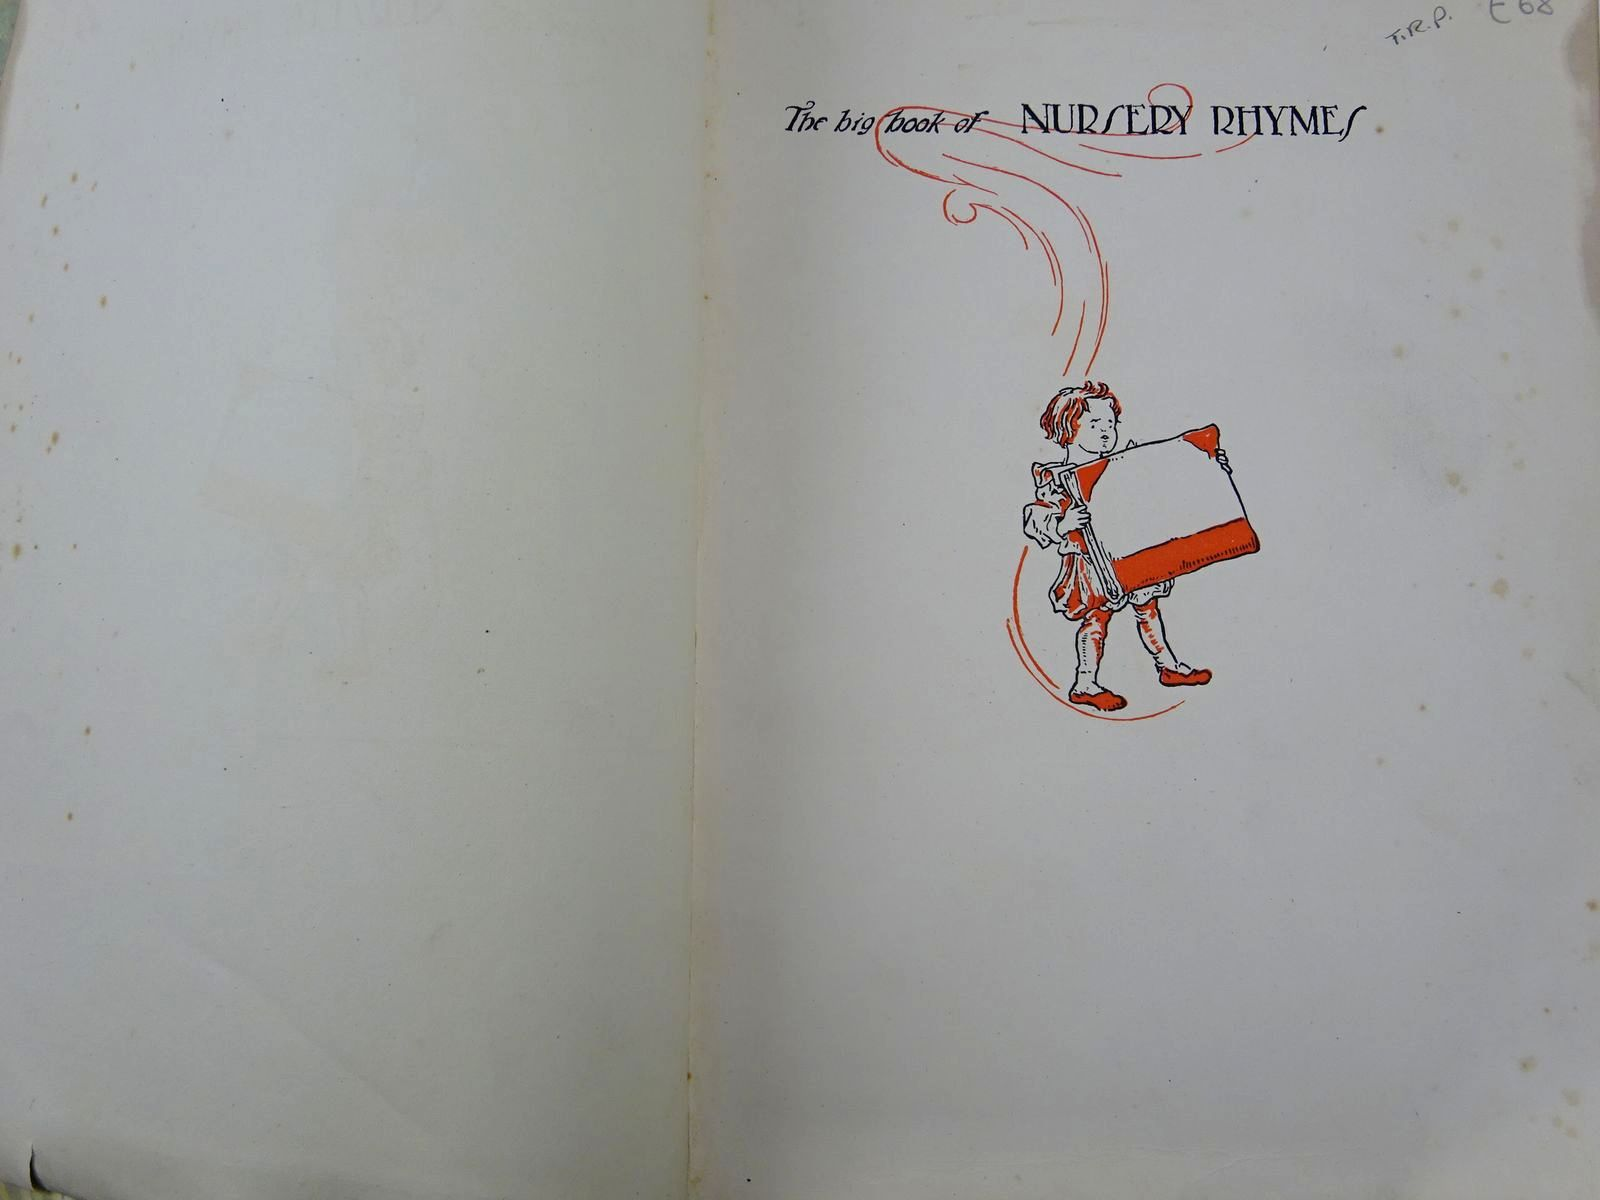 Photo of THE BIG BOOK OF NURSERY RHYMES written by Jerrold, Walter illustrated by Robinson, Charles published by Blackie & Son Ltd. (STOCK CODE: 2128140)  for sale by Stella & Rose's Books